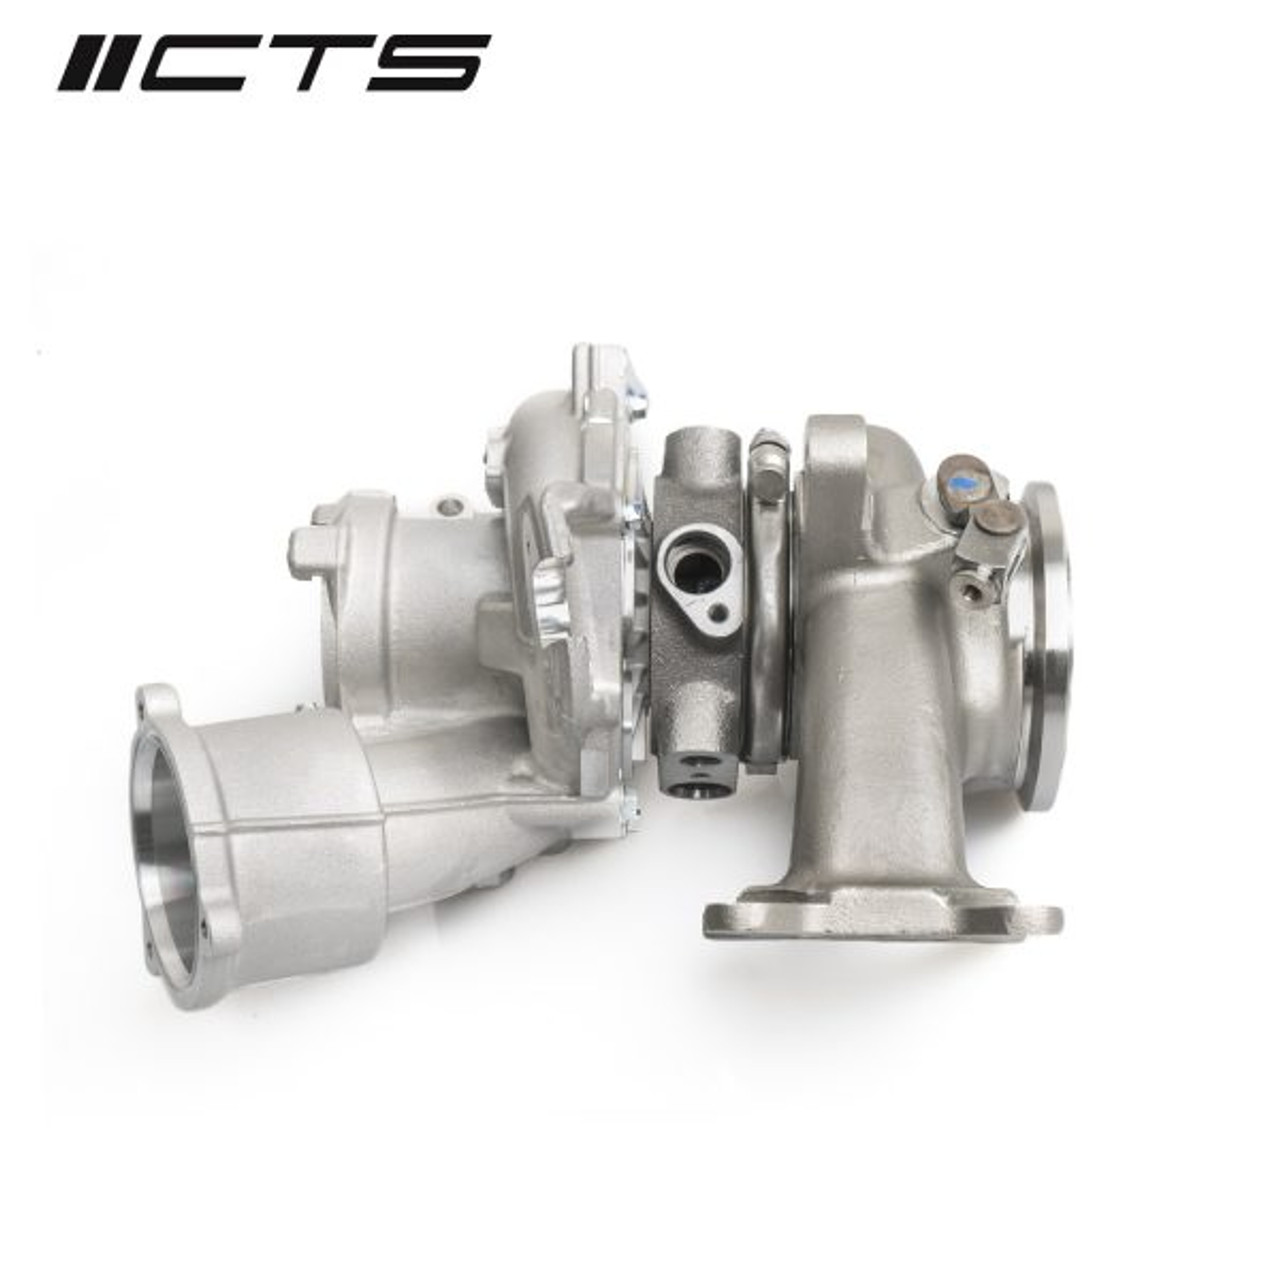 CTS Turbo IS38 Replacement Turbocharger for MQB Golf/GTI/Golf R, Audi A3/S3 (2015+)